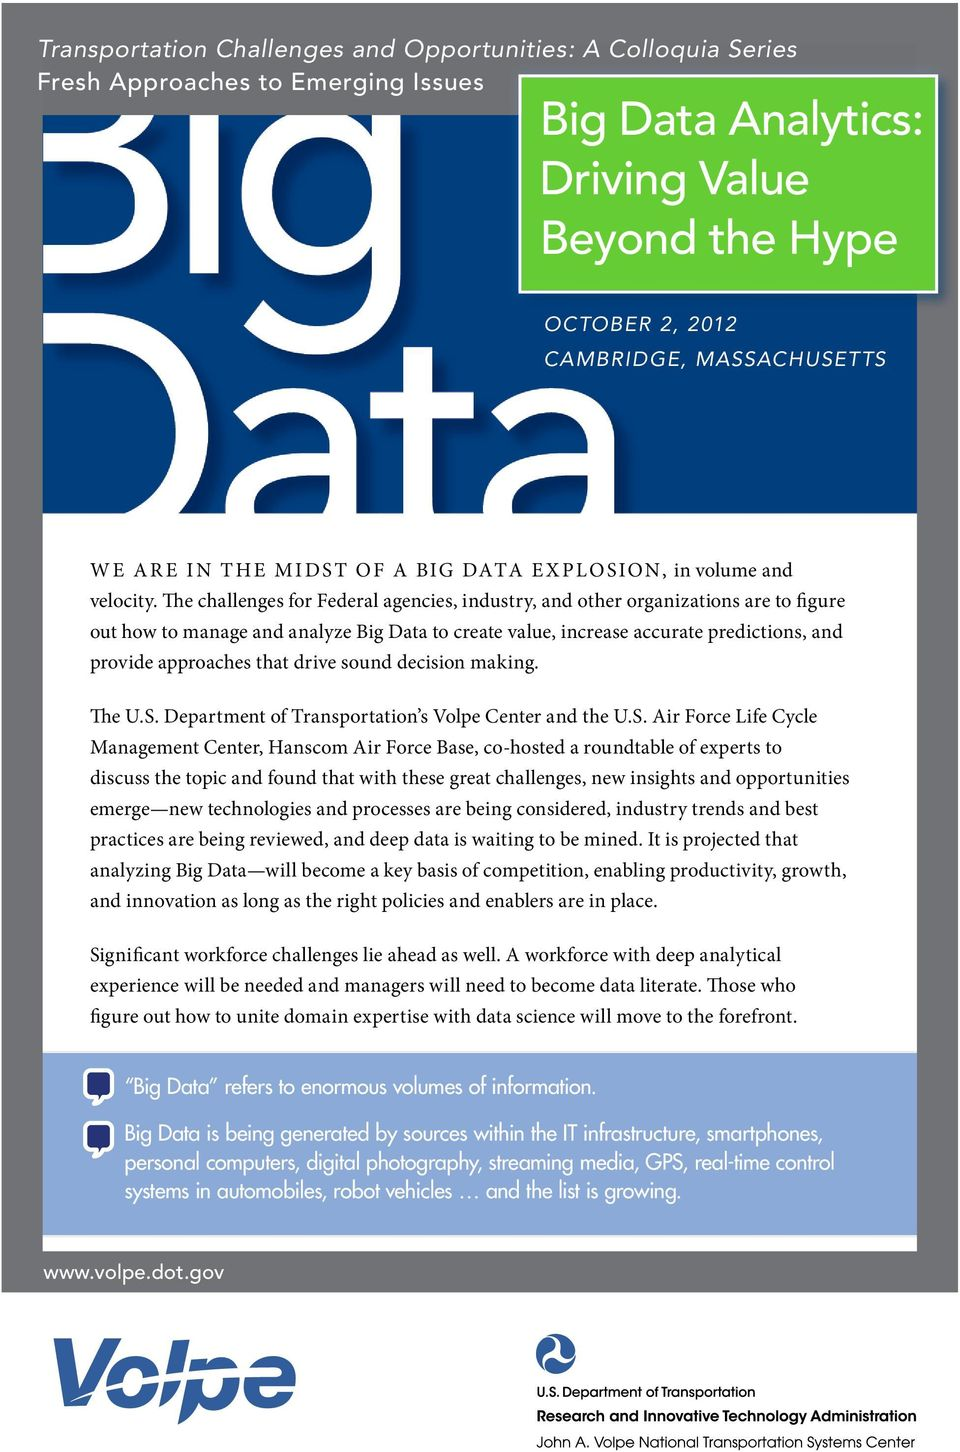 The challenges for Federal agencies, industry, and other organizations are to figure out how to manage and analyze Big Data to create value, increase accurate predictions, and provide approaches that